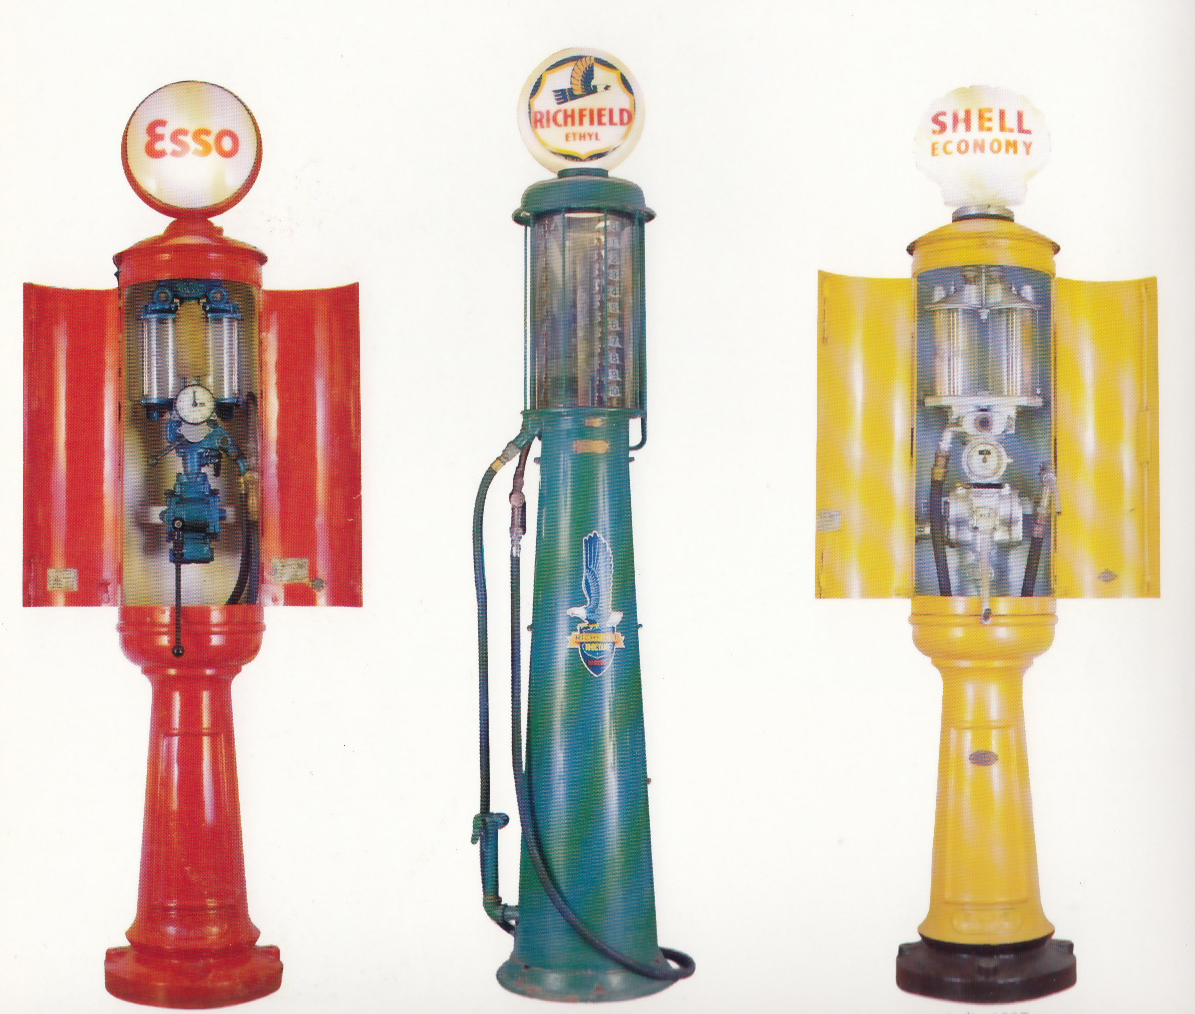 Thumbnail for The Daily Heller: The Art and Design of Gas